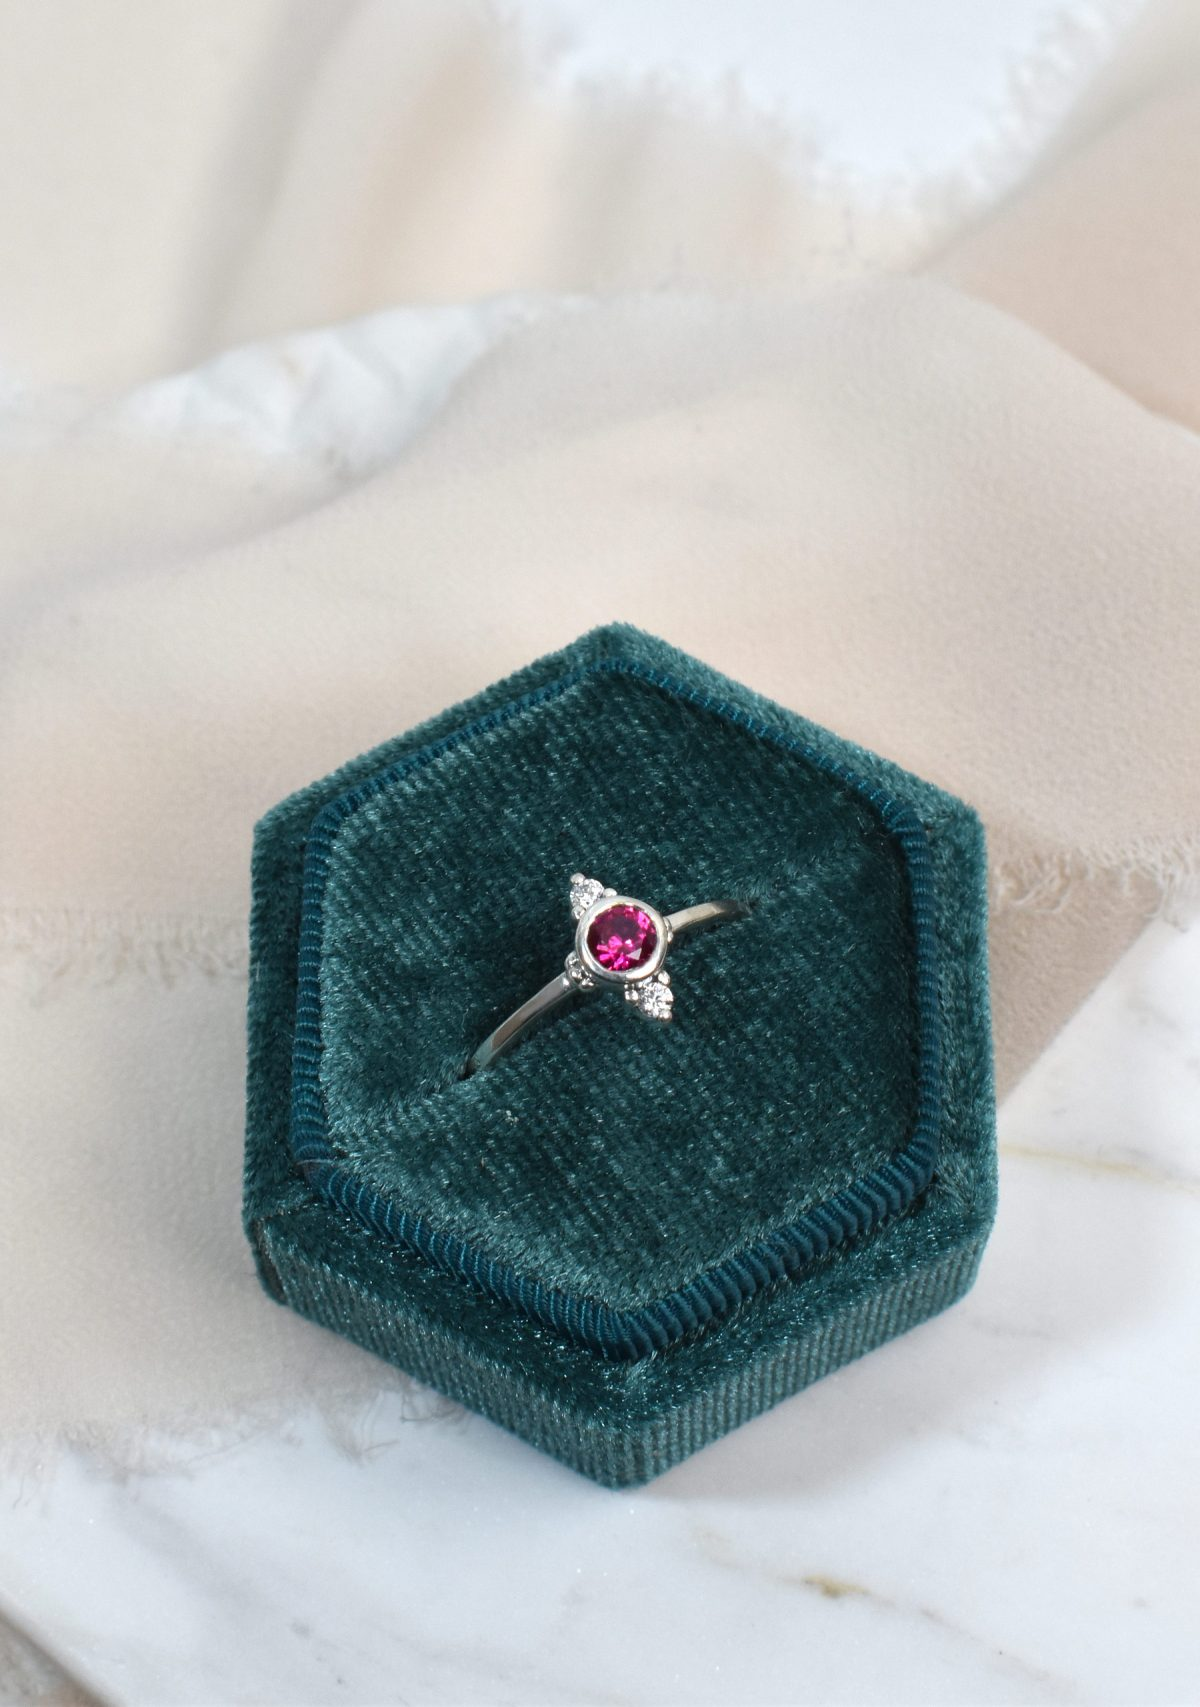 Saint K Ruby and Diamond Ring in White Gold